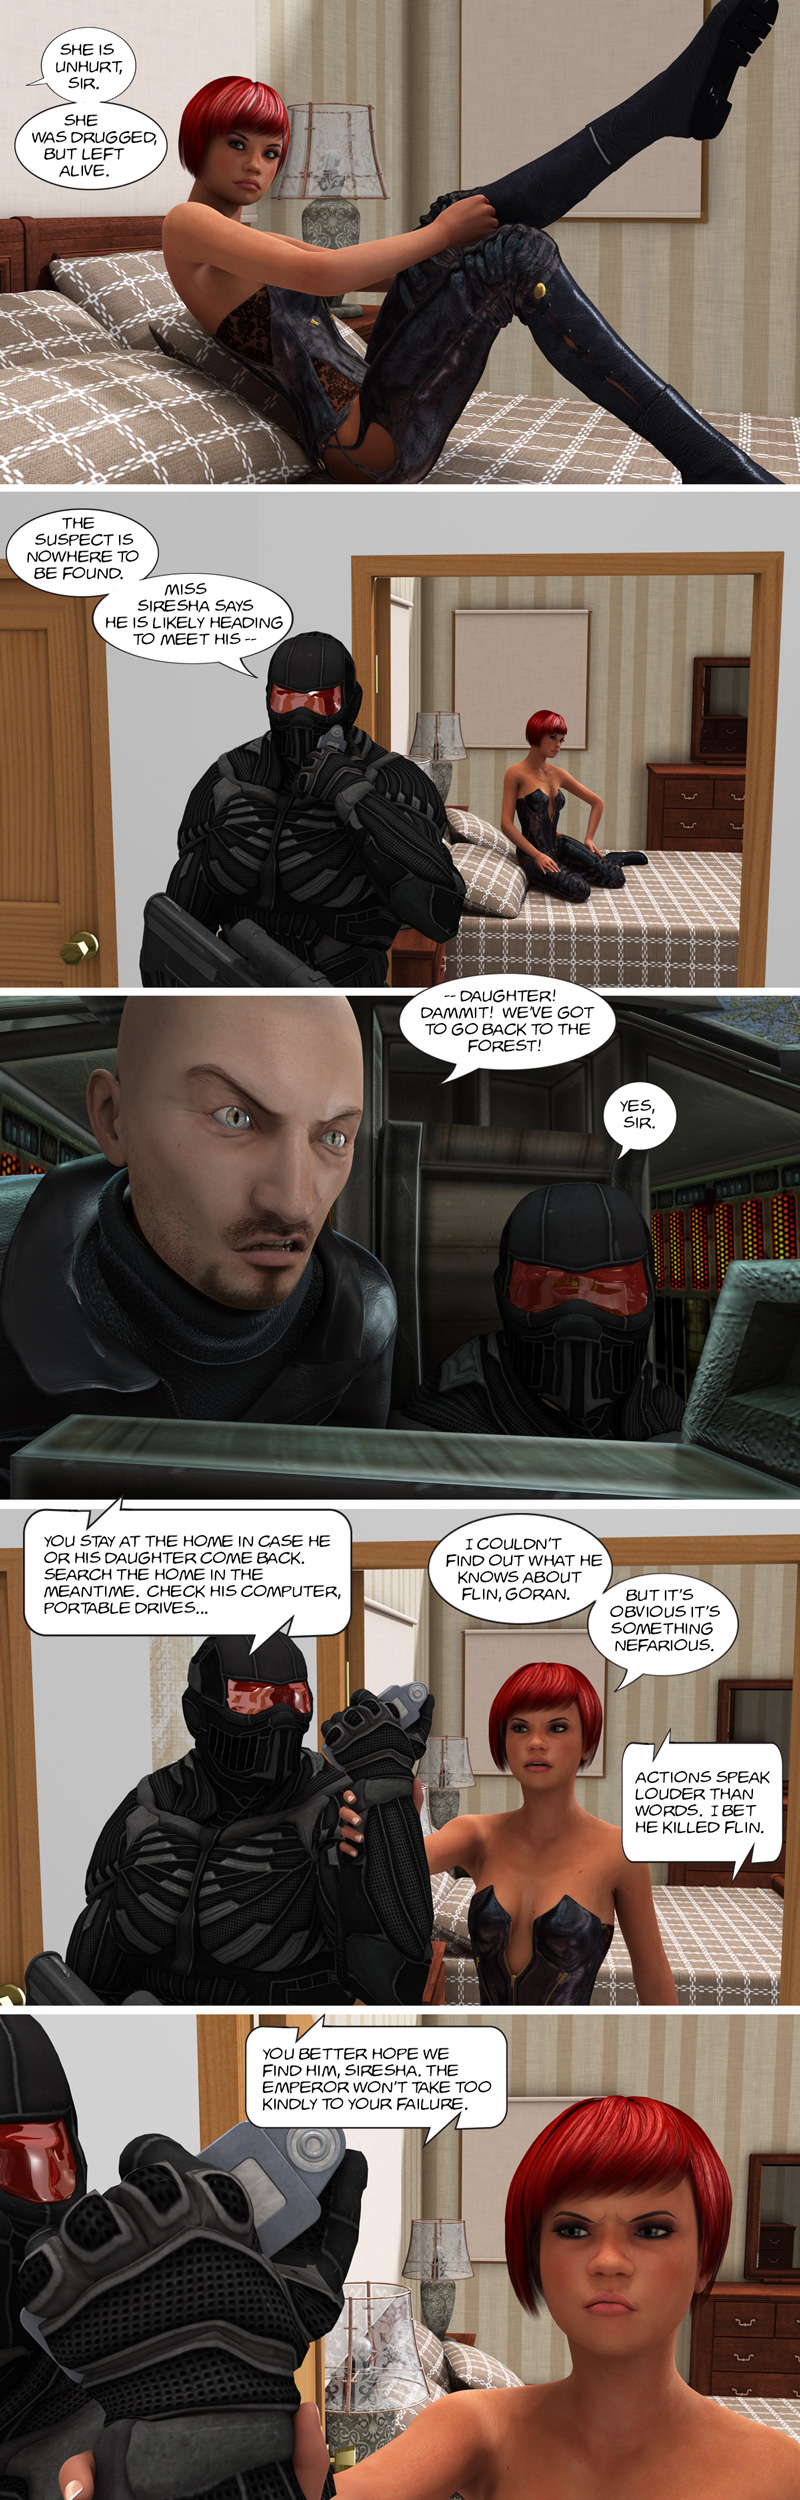 Chapter 11, page 36